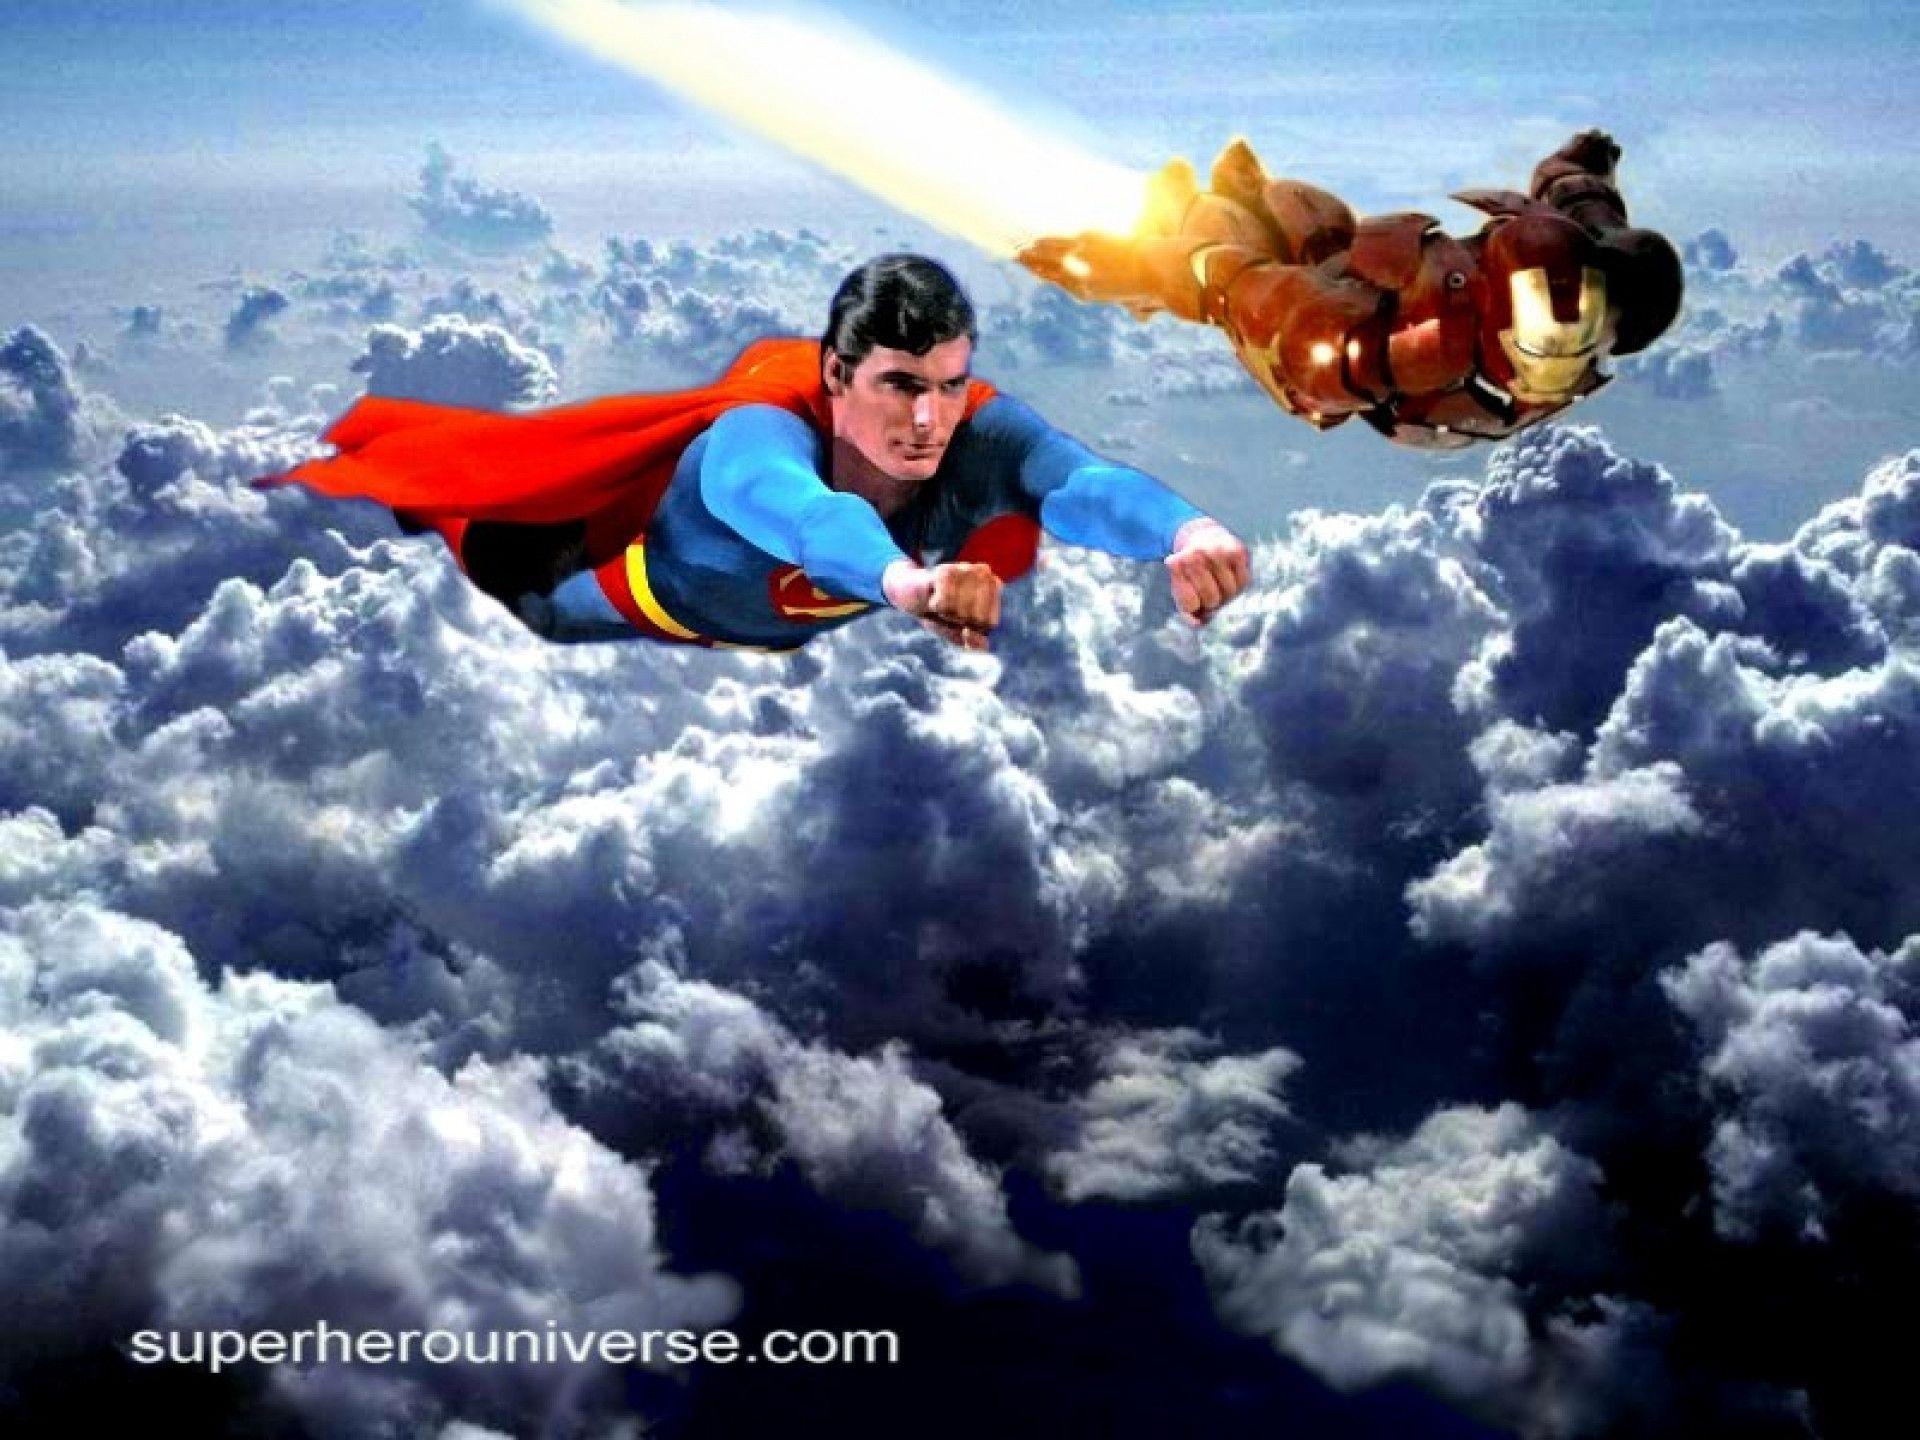 Marvellous Superman Ironman Wallpaper Click To View 1920x1440PX ...